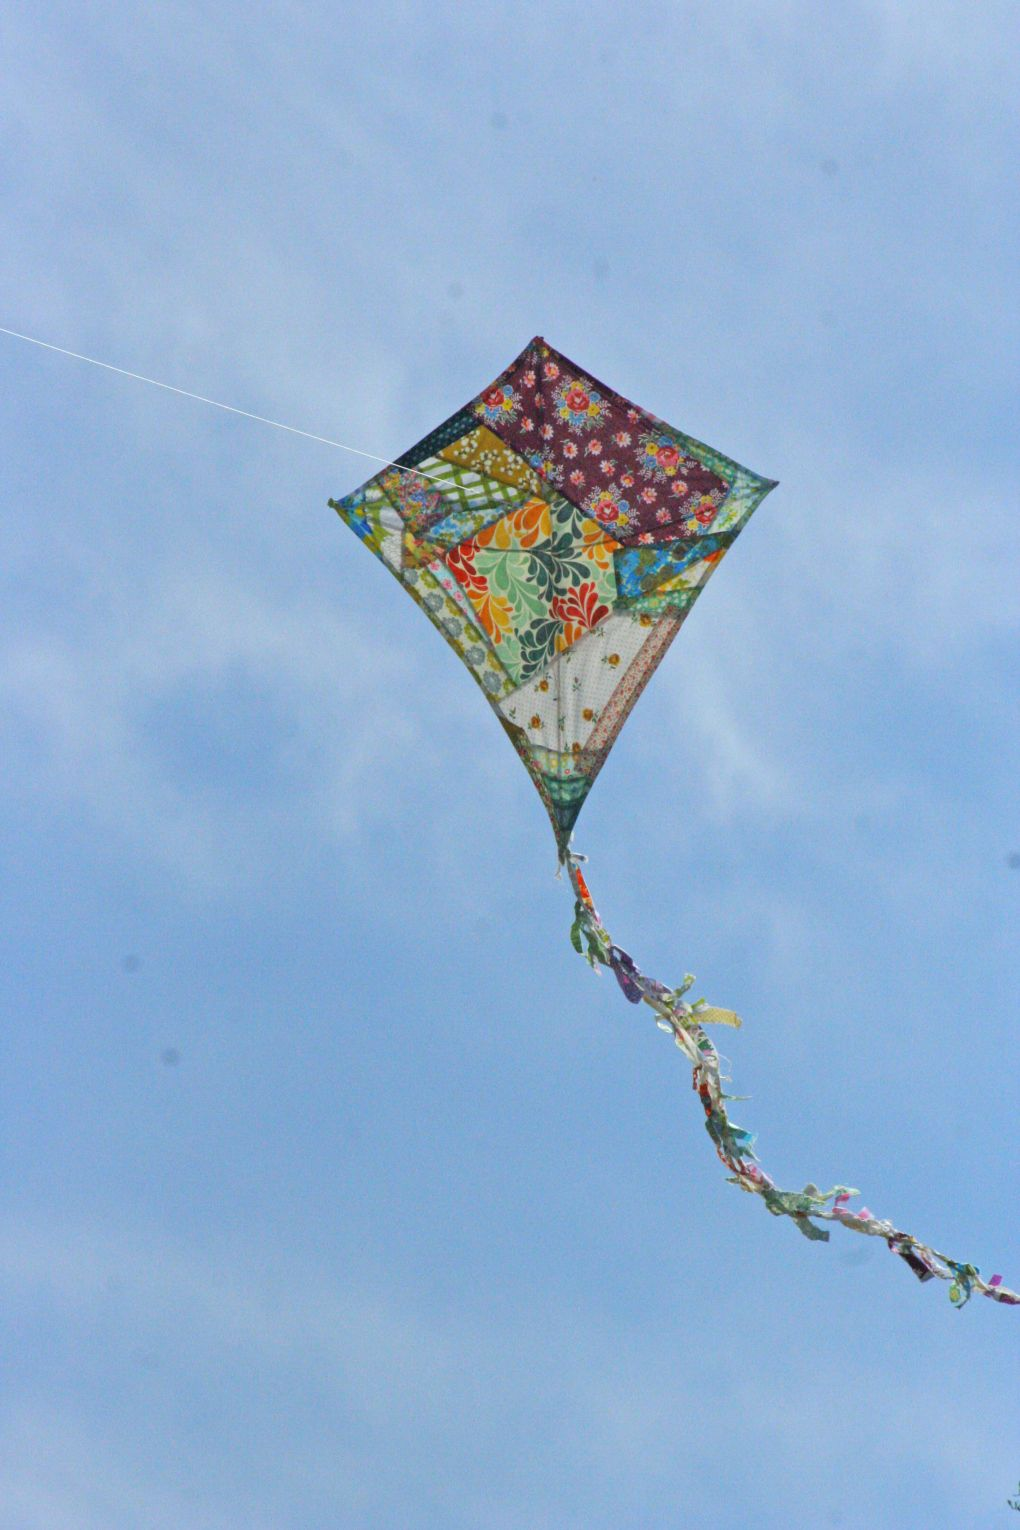 Quilted homemade kite